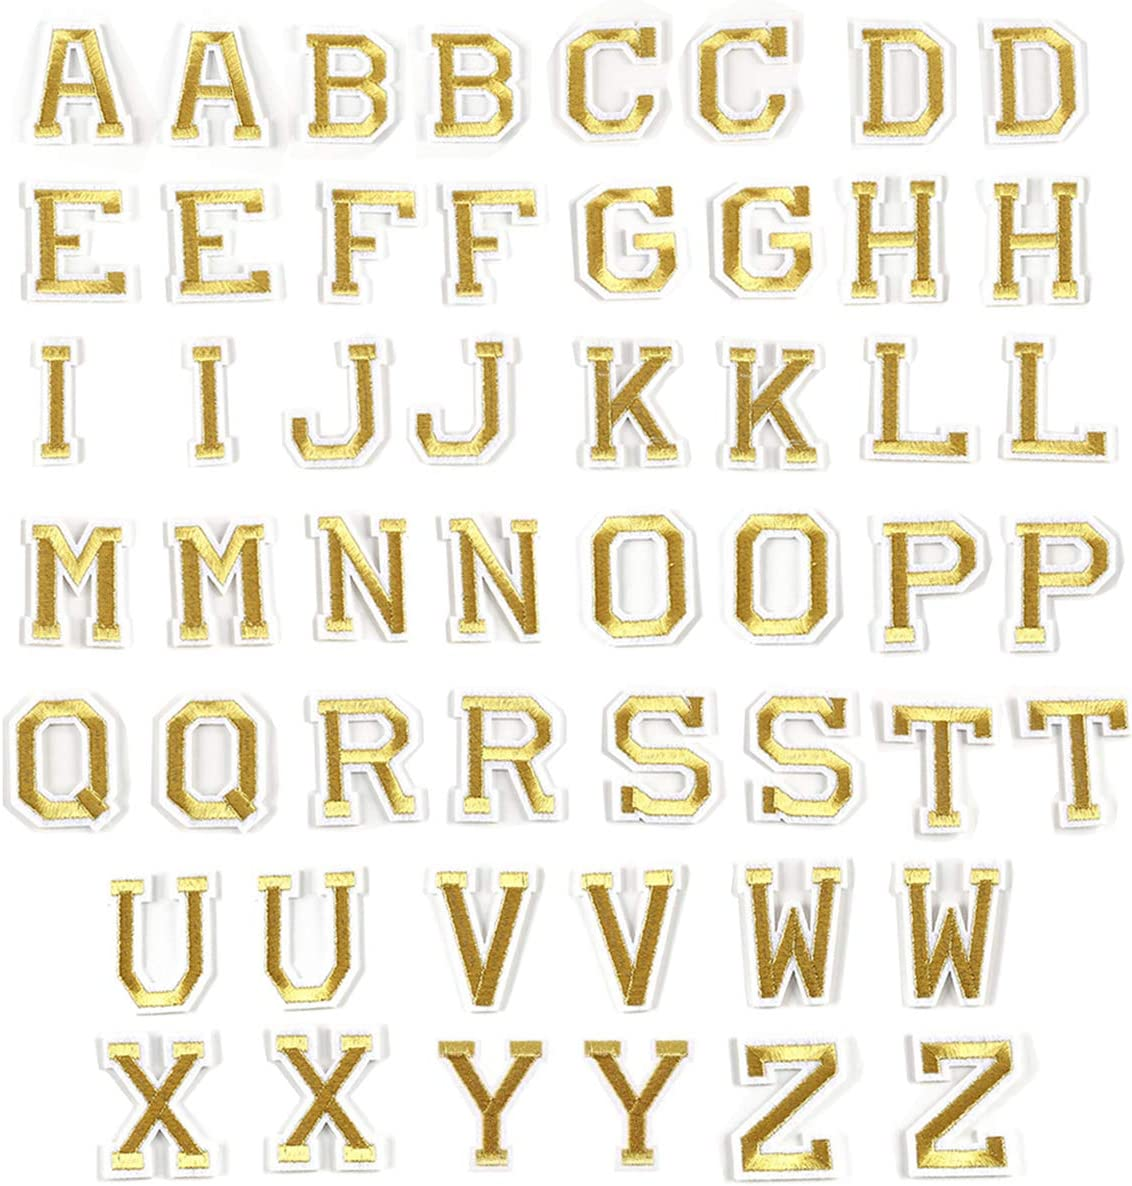 52 Pcs Gold Letter Patches Iron On Appliques A-Z Alphabet Sew On Badges DIY Name Project Crafts with Bright Gold Embroidery Fabric White Border Back Adhesive Decoration Accessories for Bags, Jackets